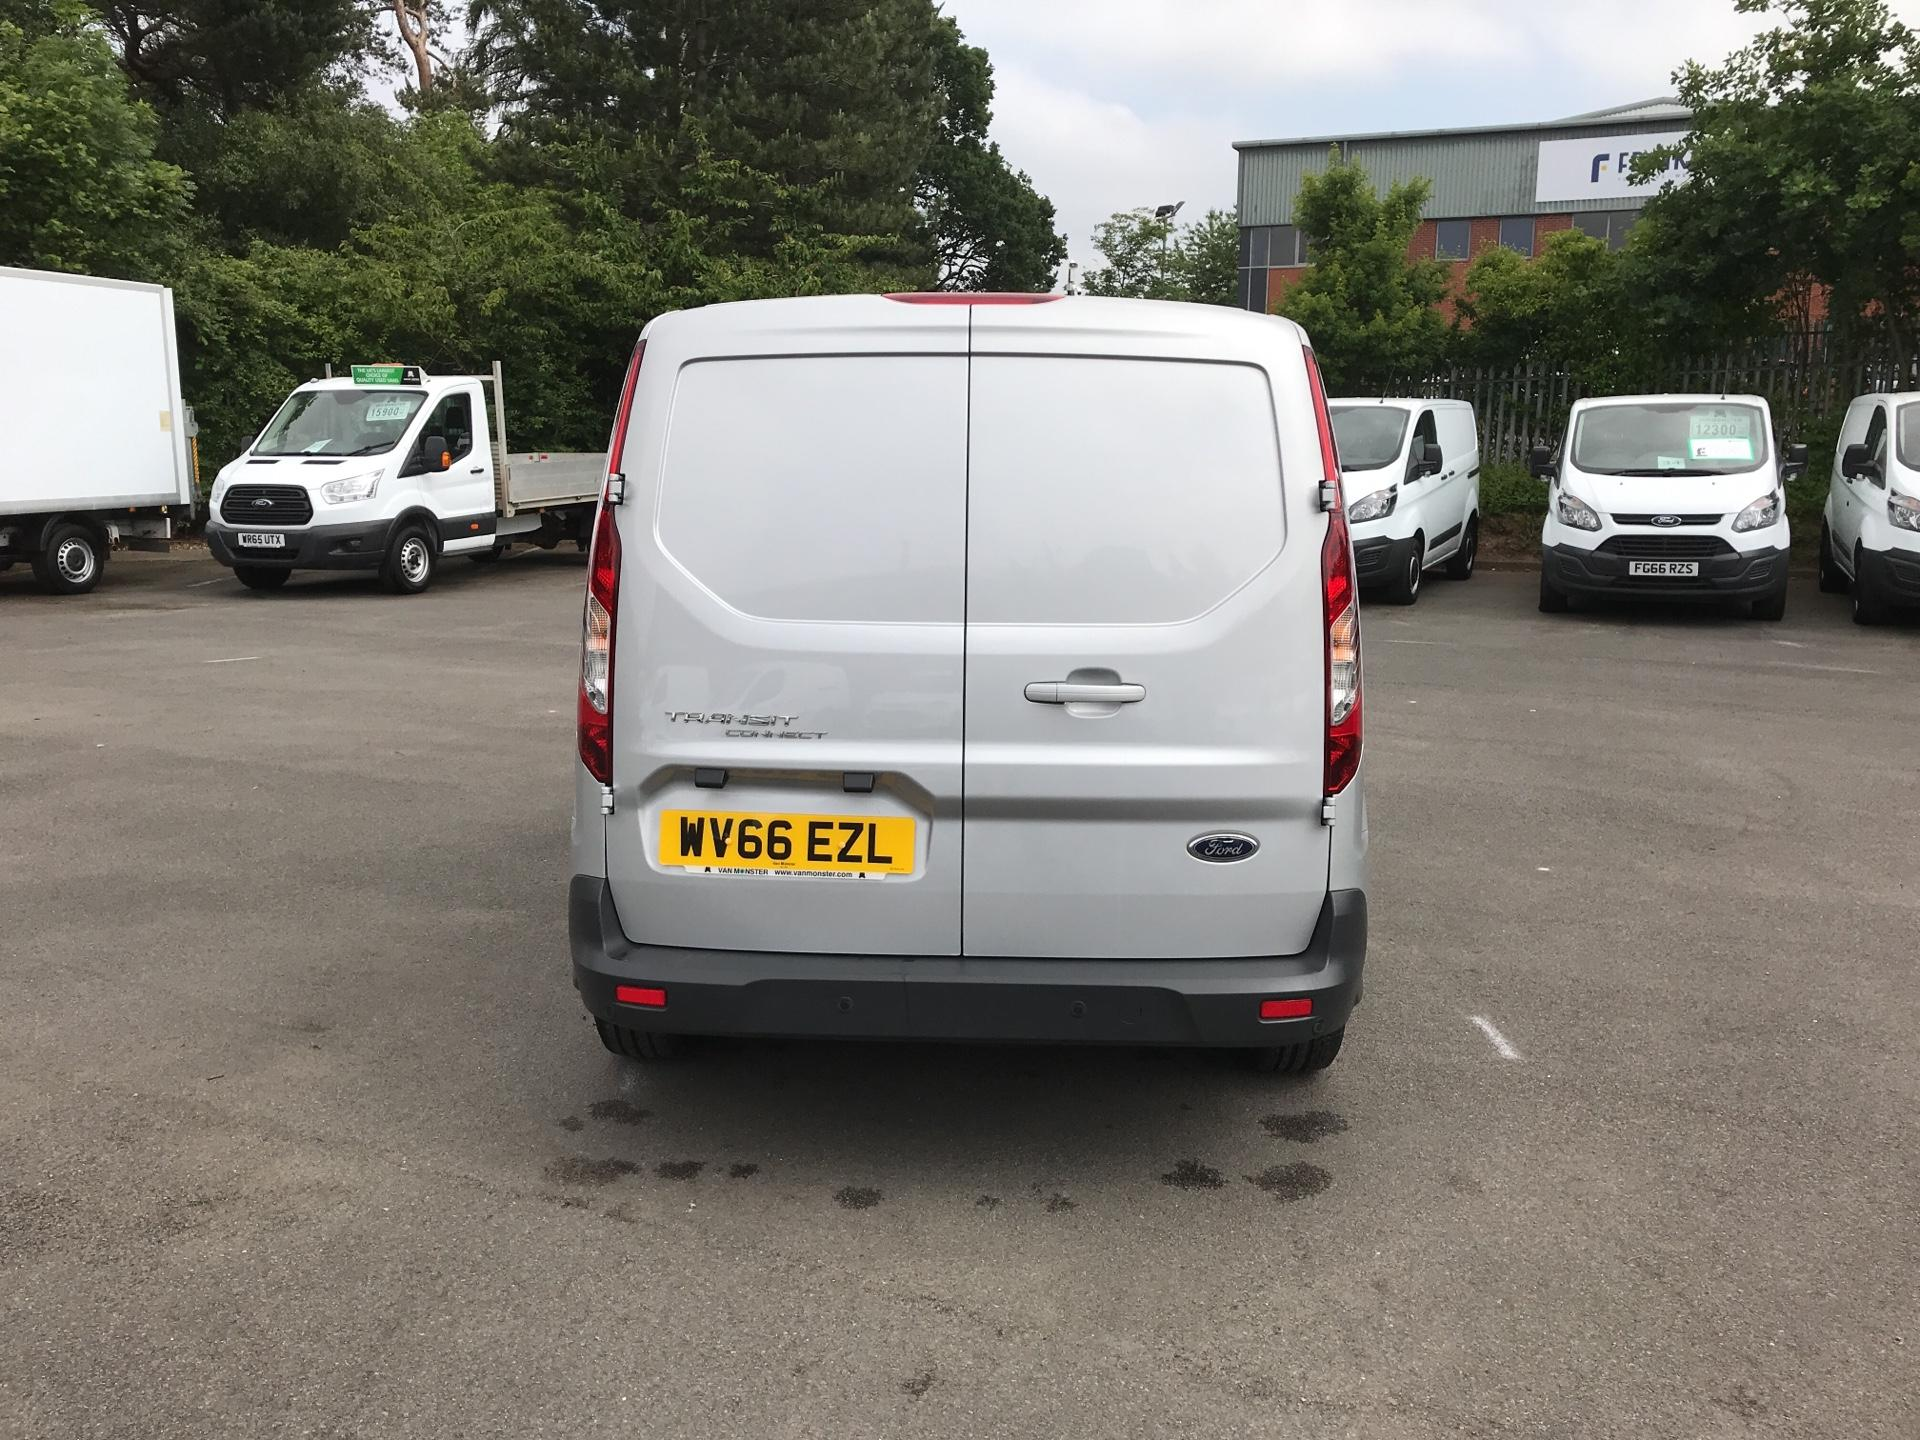 2016 Ford Transit Connect 1.5 Tdci 120Ps Limited Van EURO 6 (WV66EZL) Image 4